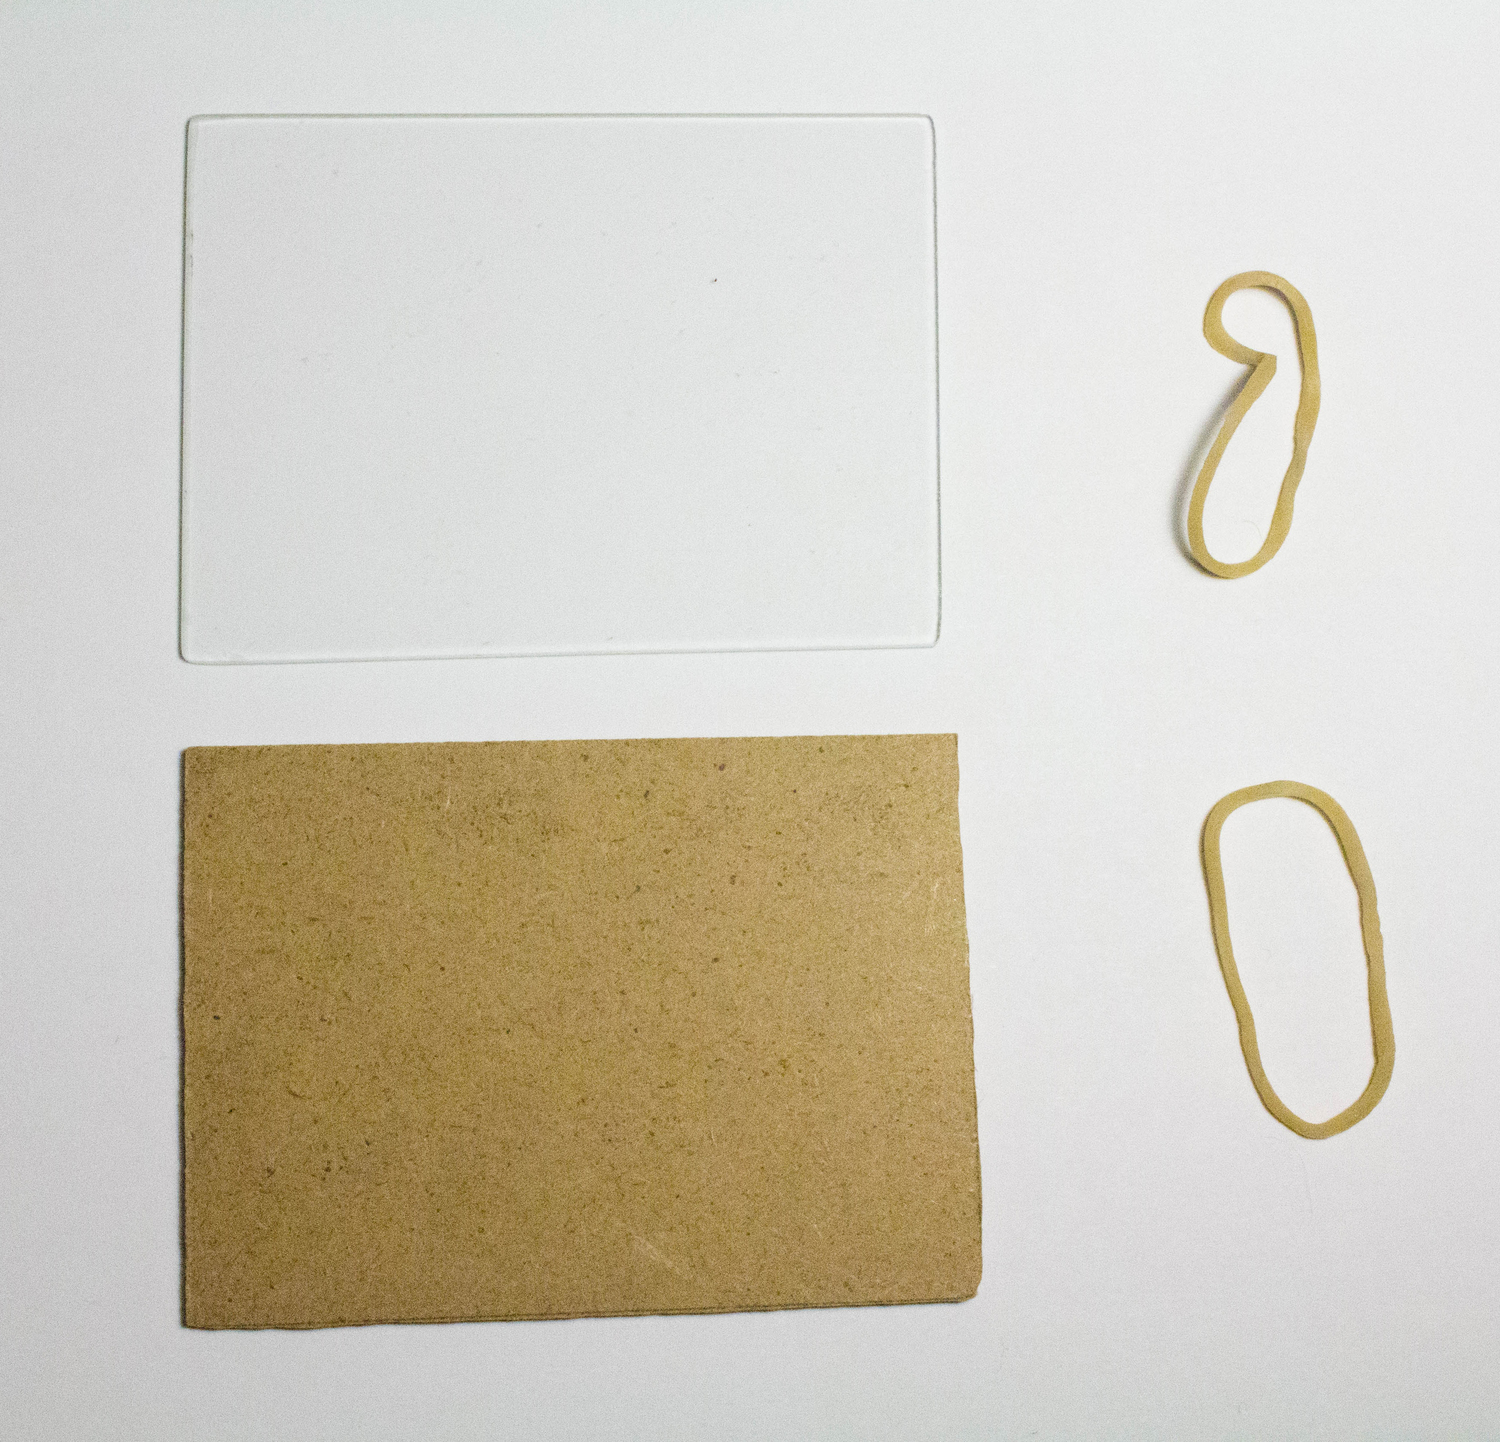 How to make a photopolymer exposure unit for use with a UV